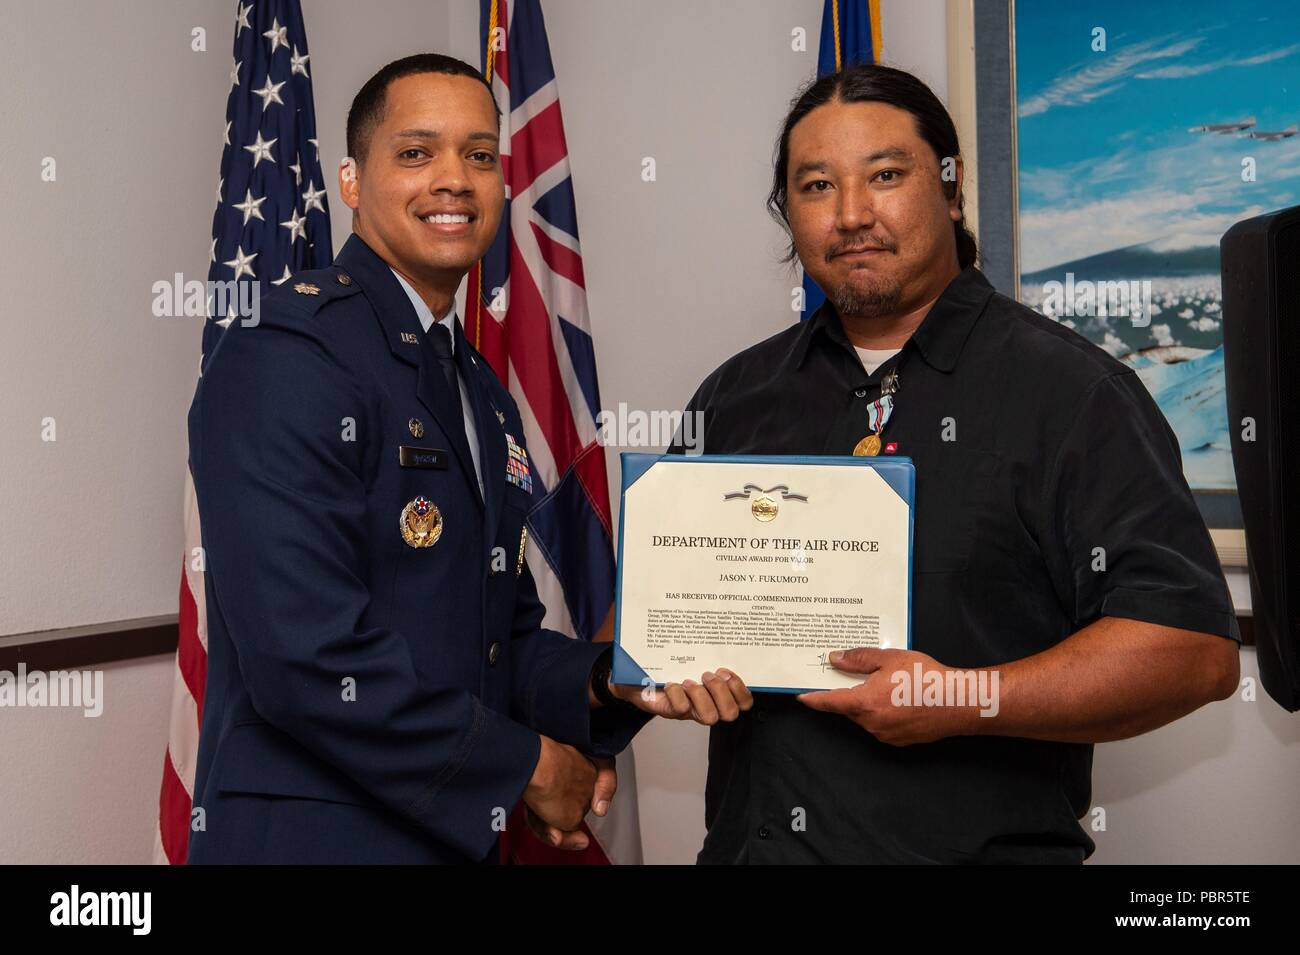 Lt. Col. Wade McGrew, 21st Space Operations Squadron commander, presents the Air Force Civilian Award for Valor to Jason Fukumoto, Detachment 3, 21st SOPS electrician, at the Kaena Point Satellite Tracking Station, Hawaii, July 23, 2018. Two years ago, Fukumoto provided medical aid to a state of Hawaii volunteer field crew member who suffered from smoke inhalation during a fire at the Kuaokala Game Management Area. (U.S. Air Force photo by Tech. Sgt. Heather Redman) - Stock Image